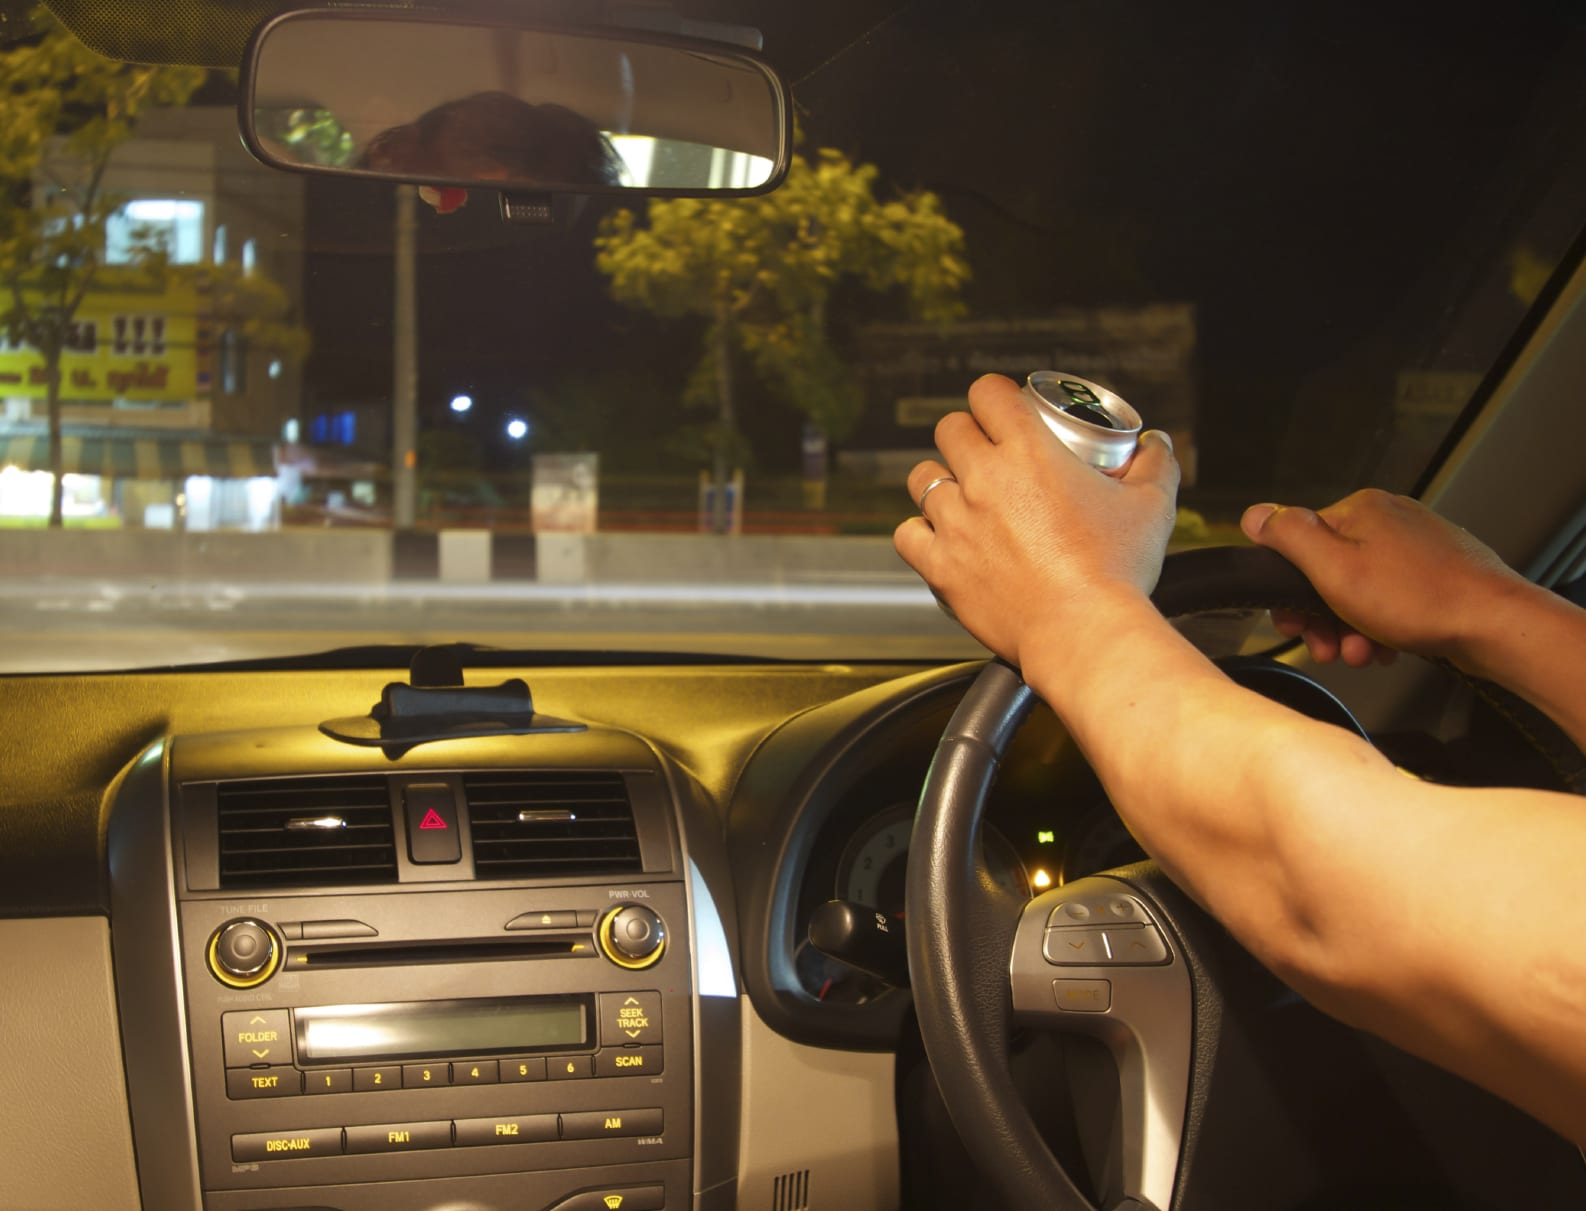 essays on mothers against drunk driving Drunk driving essay by lauren bradshaw while the fight against drunk driving seems to have no end, many other solutions exist besides the raising of fines.